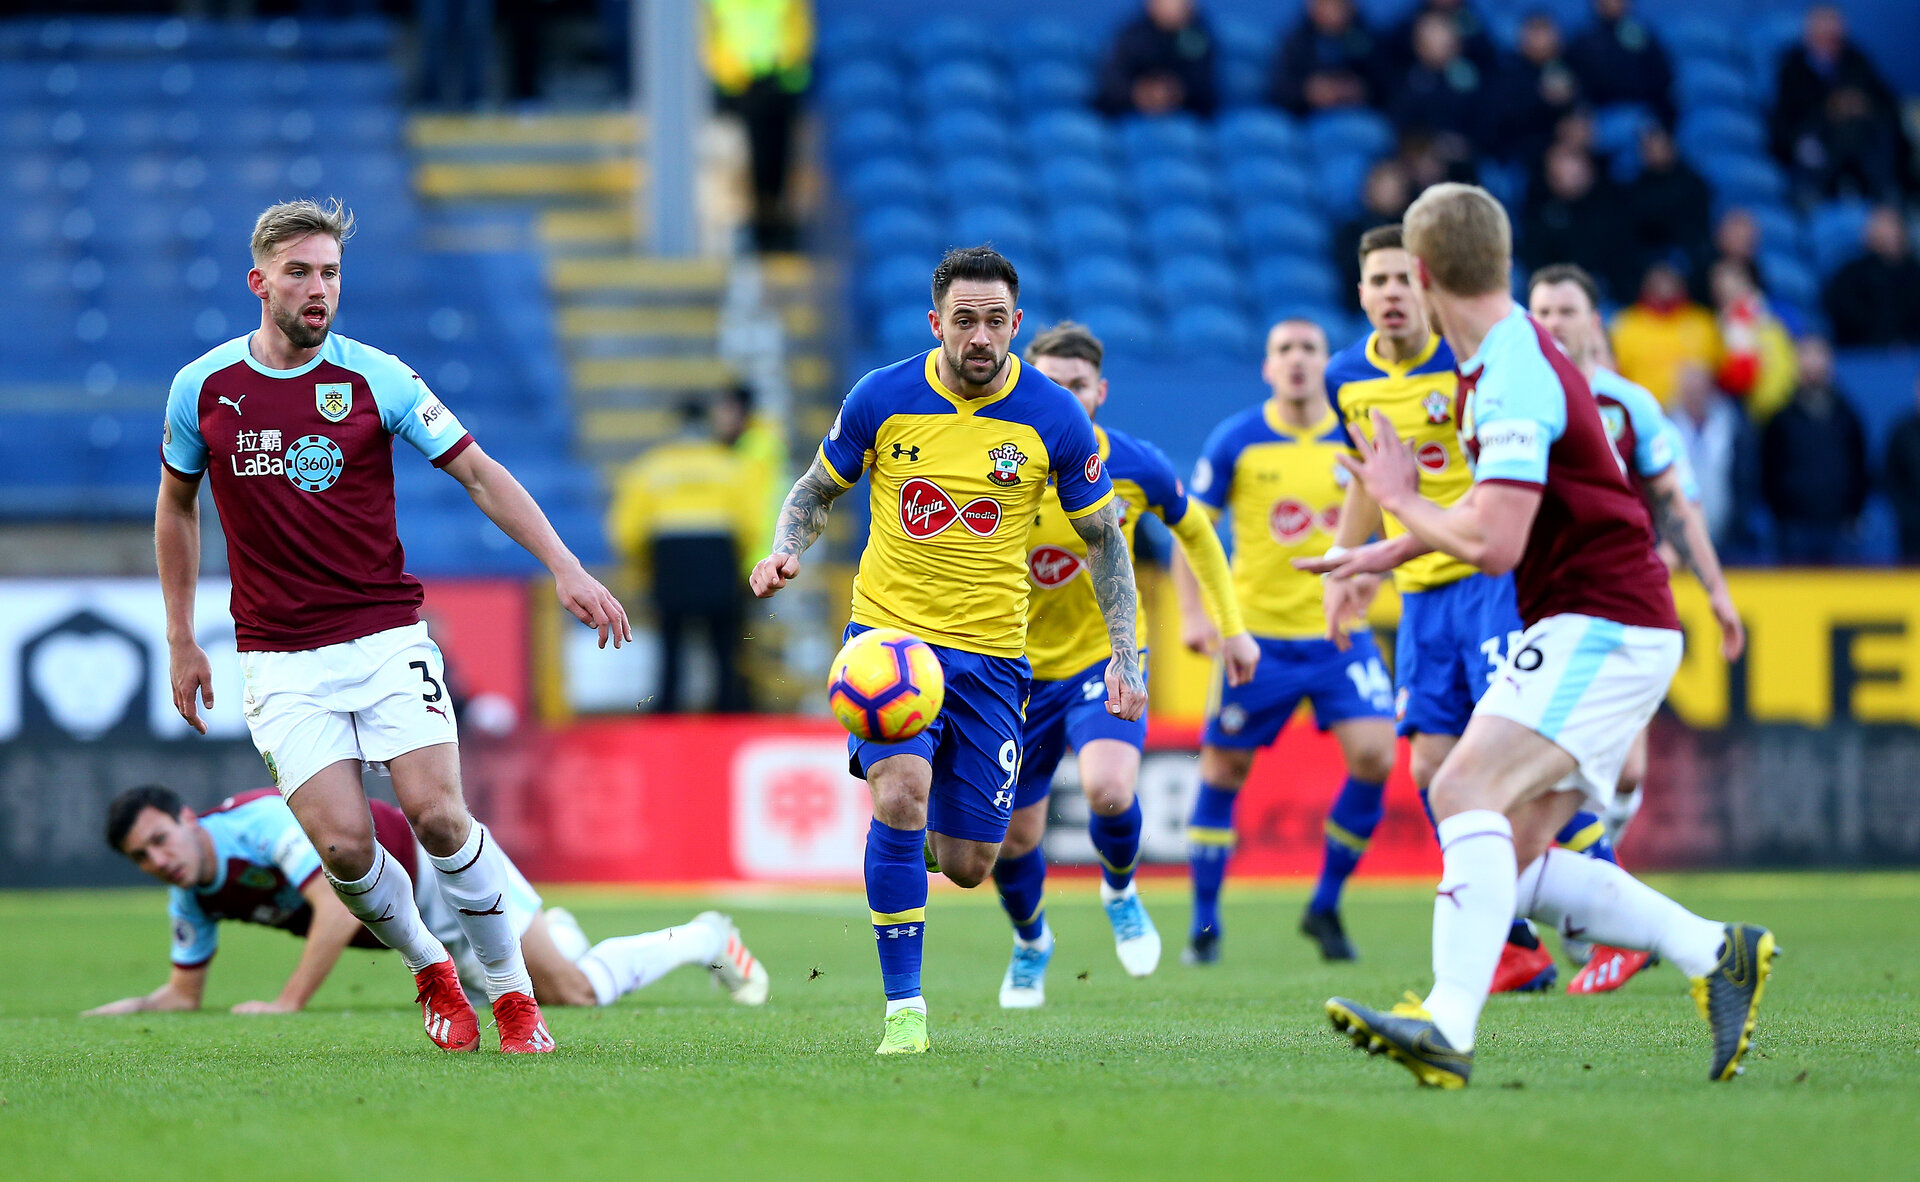 BURNLEY, ENGLAND - FEBRUARY 02: Danny Ings of Southampton during the Premier League match between Burnley FC and Southampton FC at Turf Moor on February 02, 2019 in Burnley, United Kingdom. (Photo by Matt Watson/Southampton FC via Getty Images)